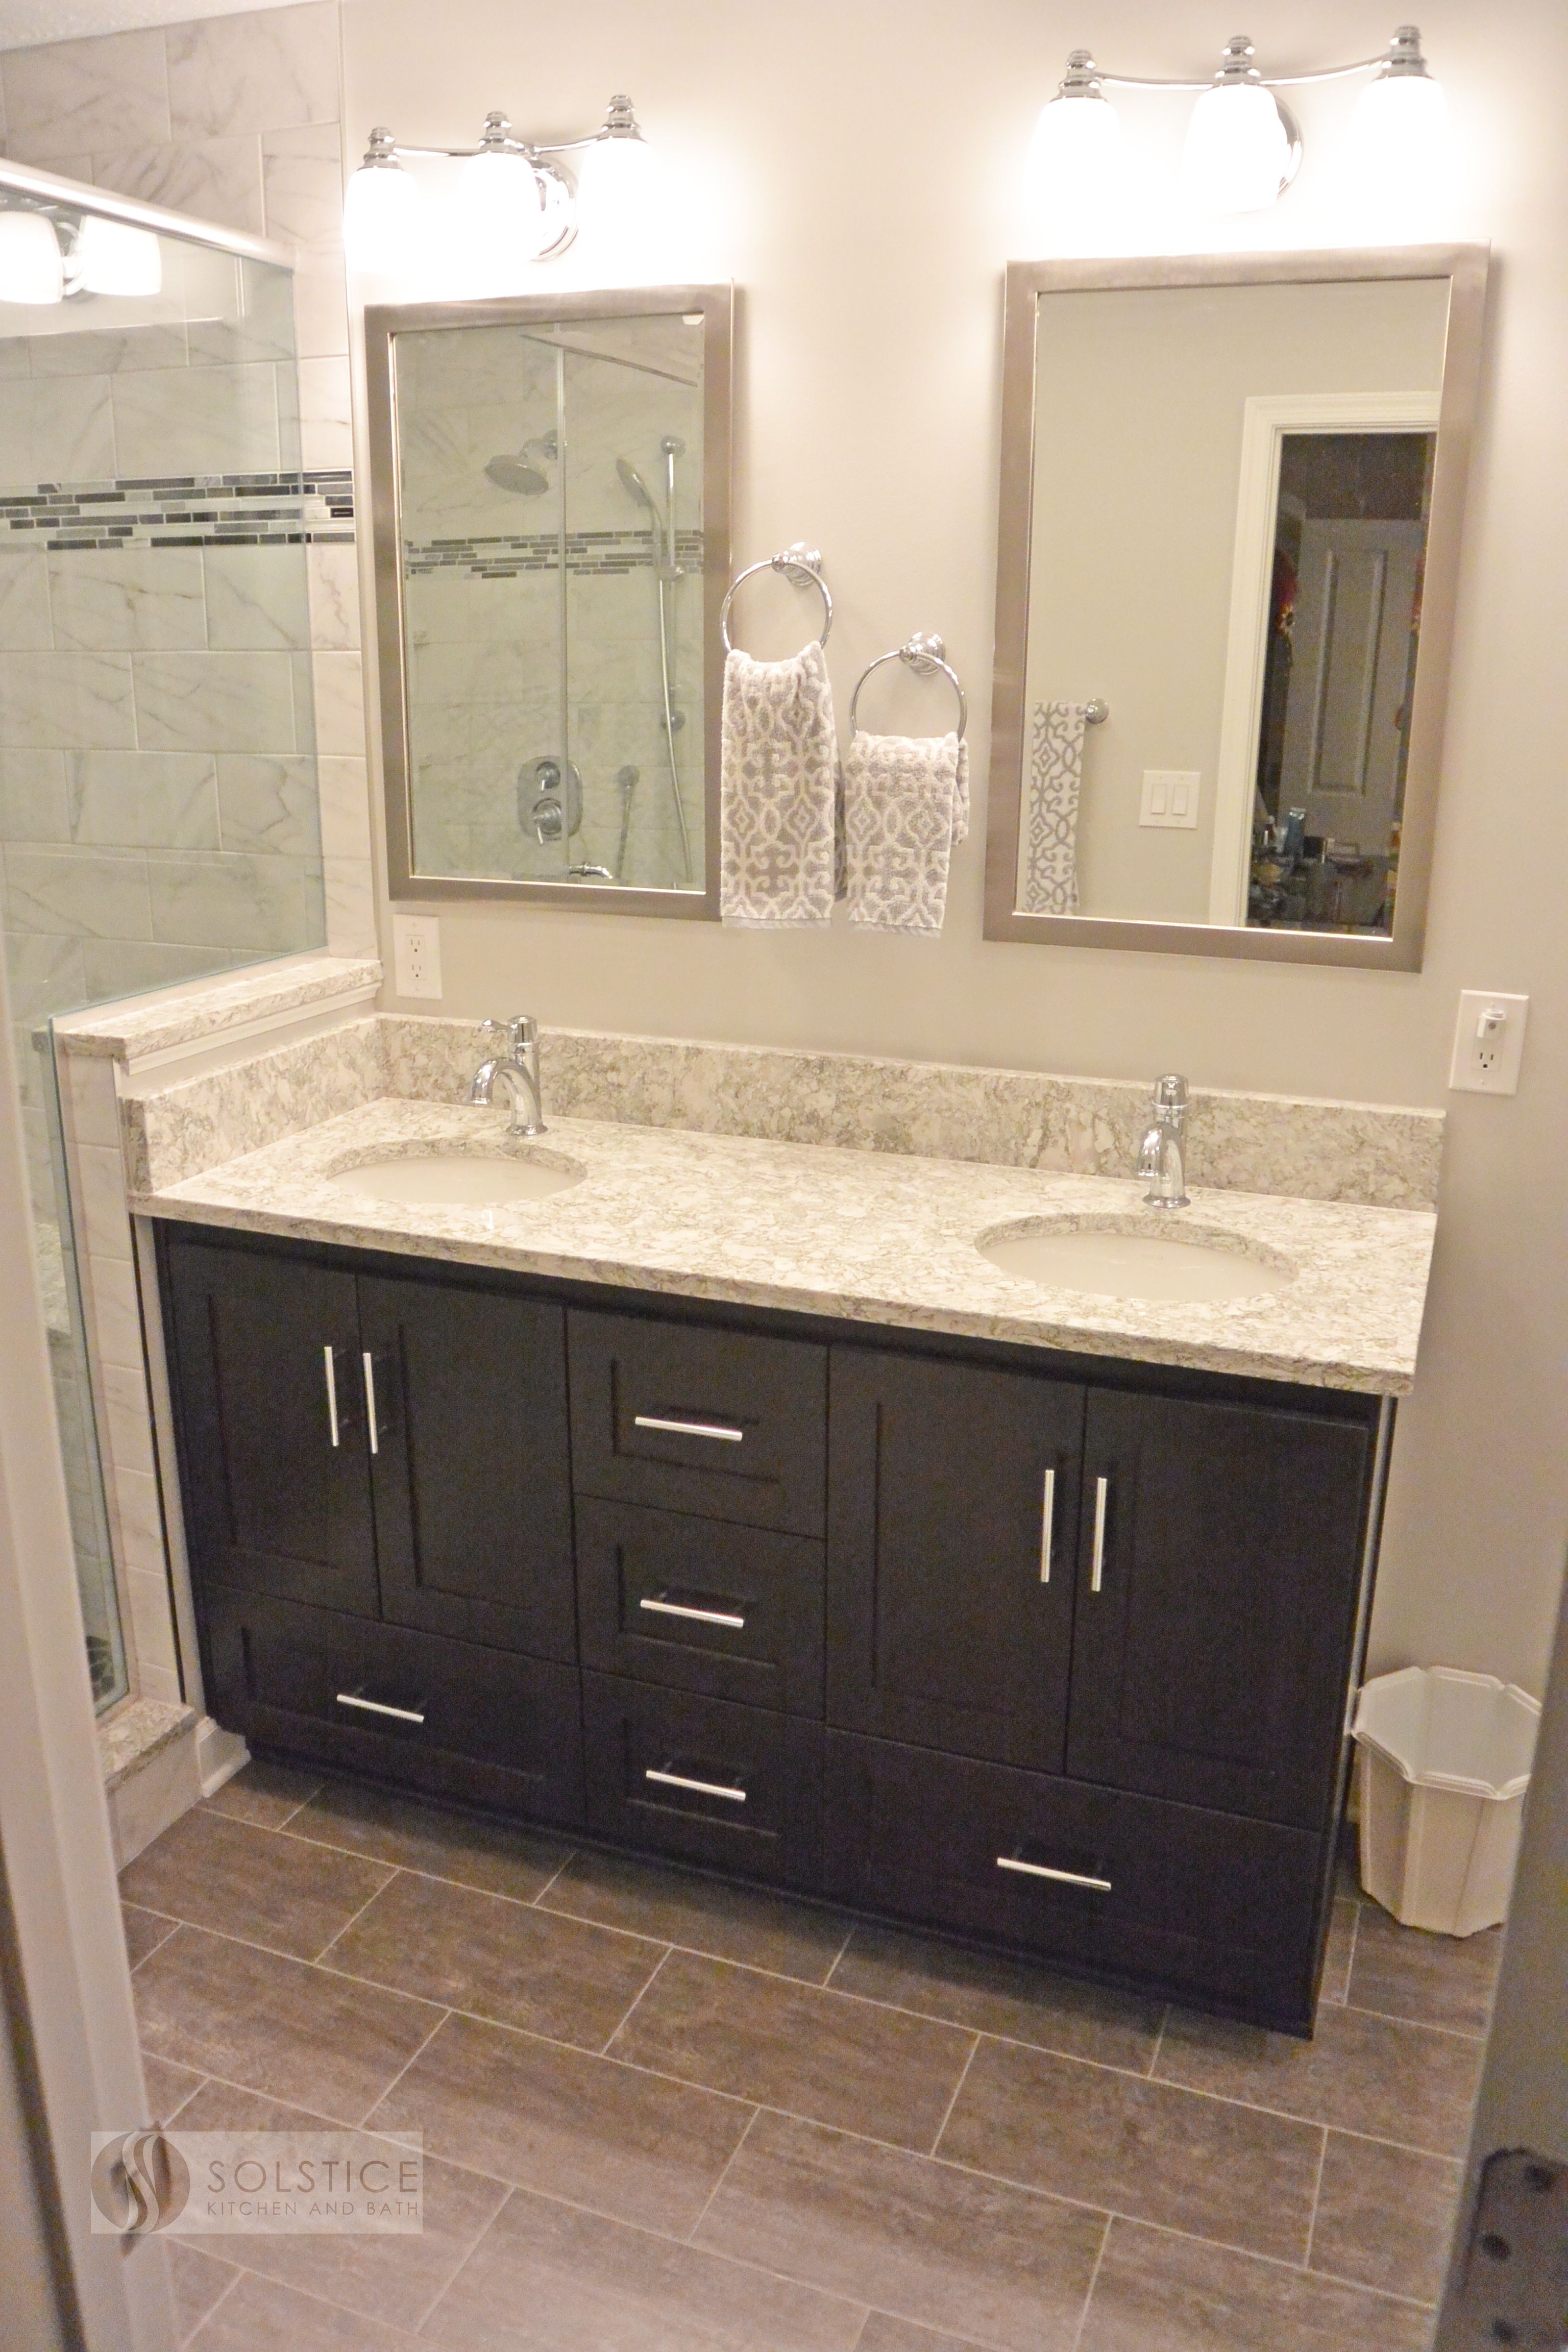 This Warm Transitional Bathroom Design In A Walden Garage Townhome In Crofton Combines A Fra Transitional Bathroom Design Bathroom Design Transitional Bathroom